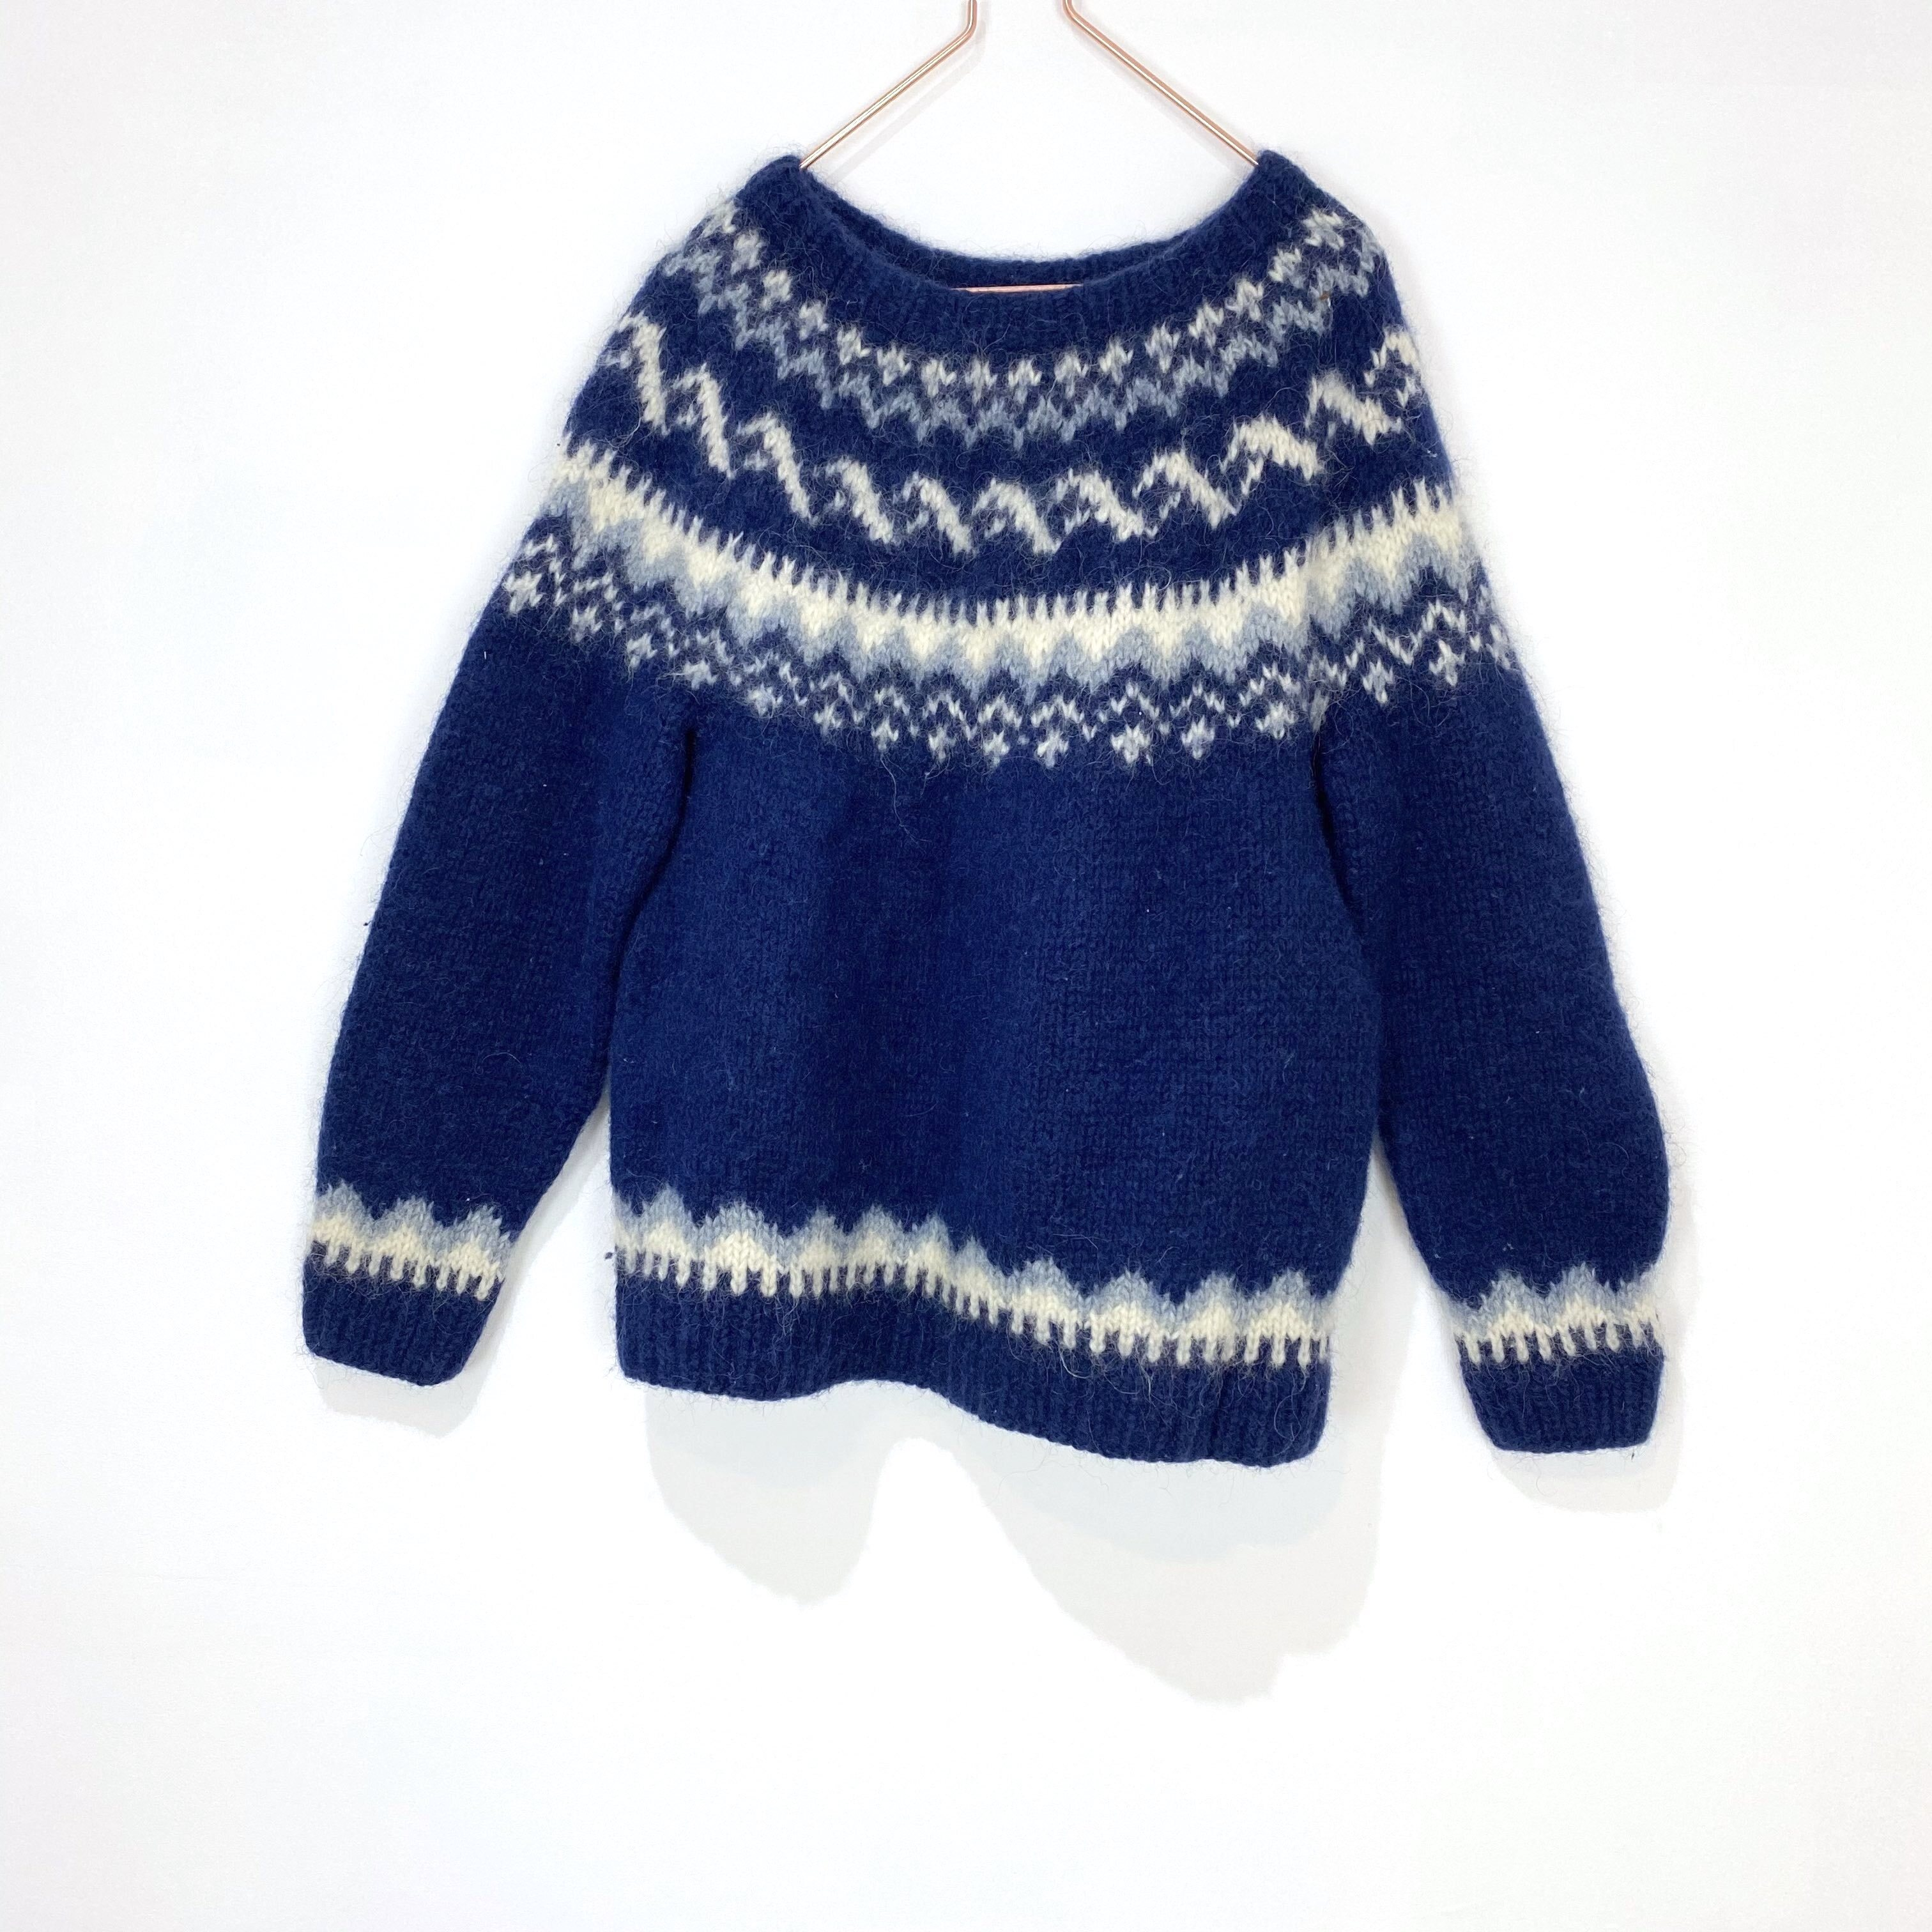 ◼︎90s Nordic pattern sweater from Iceland◼︎